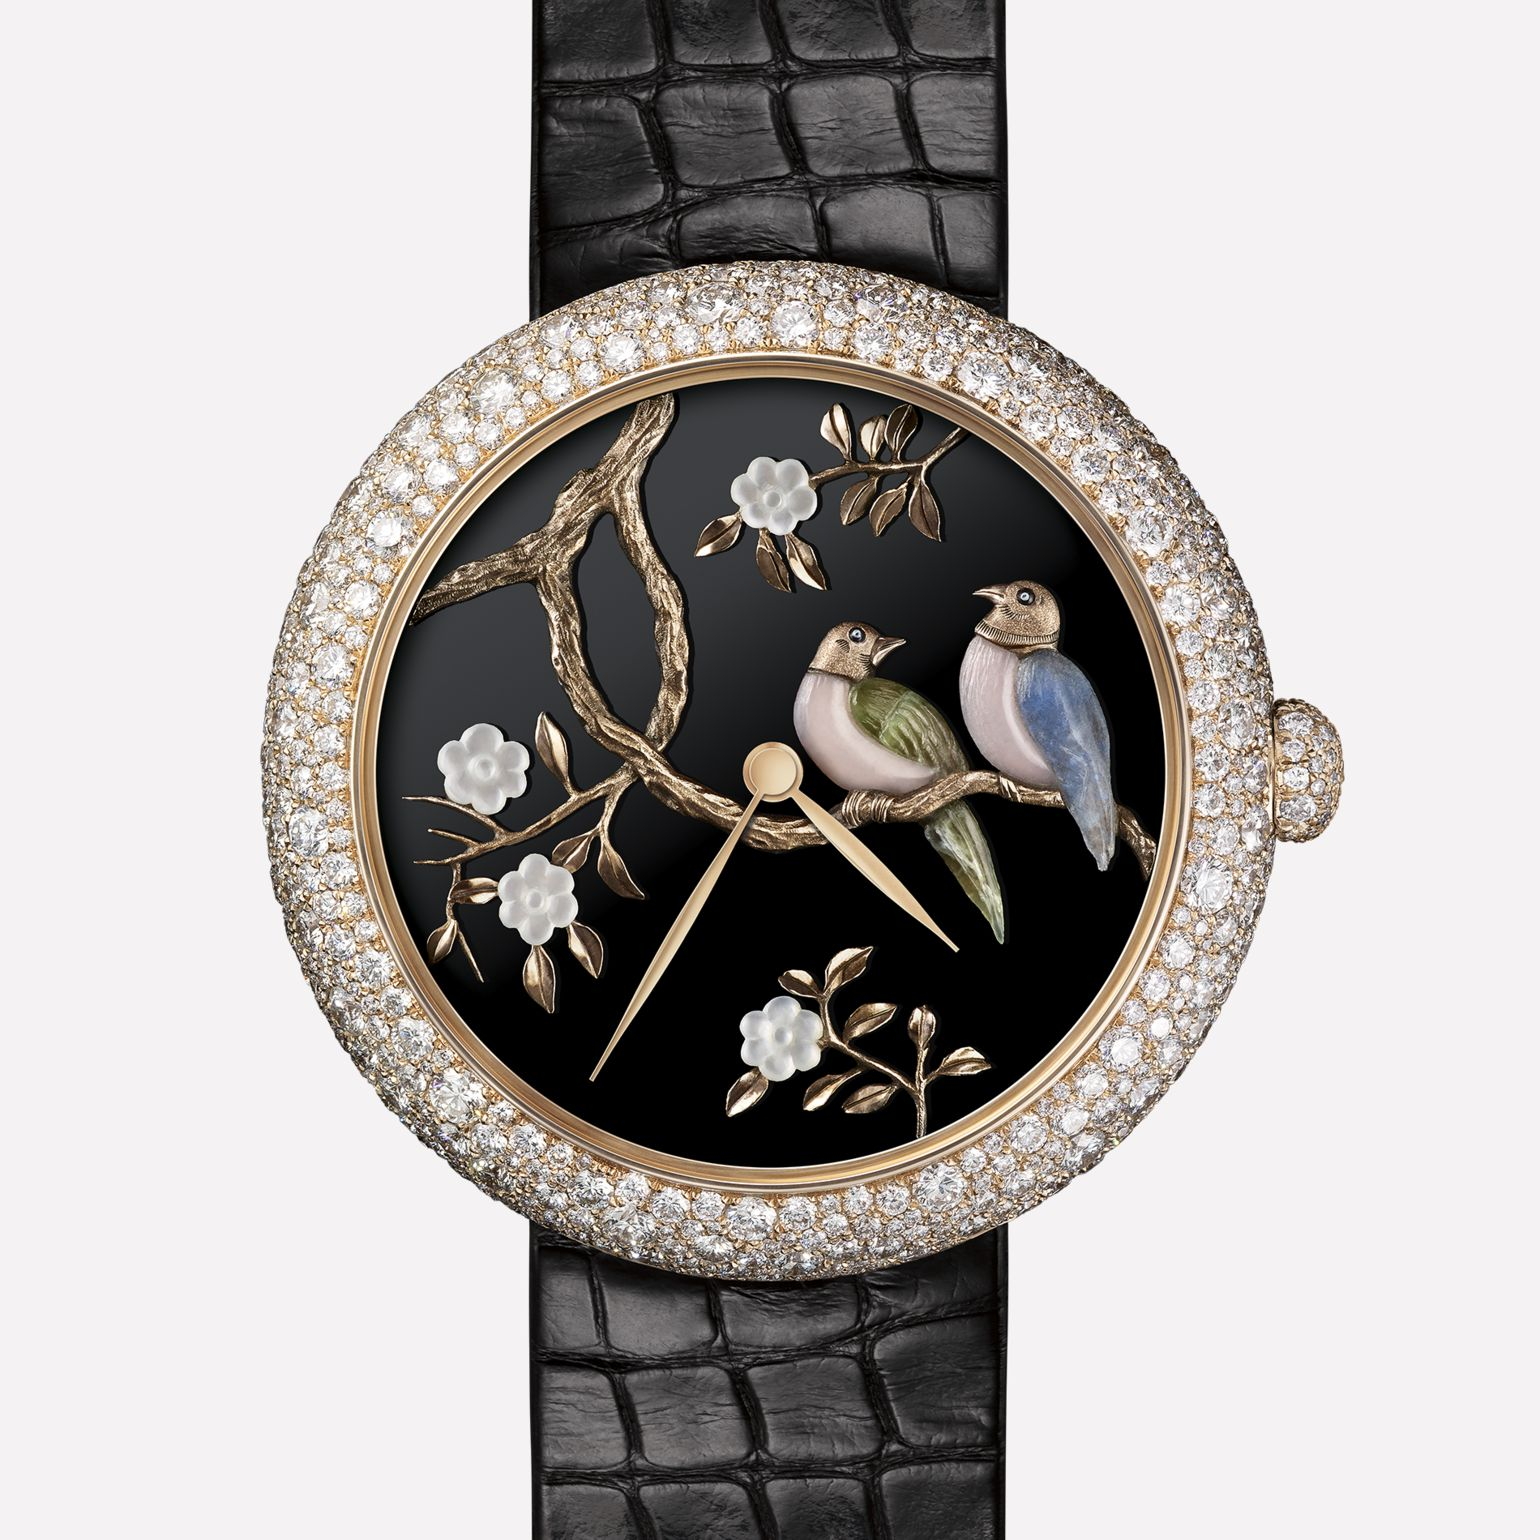 Mademoiselle Privé Watch Coromandel Flying Bird created using the glyptic technique